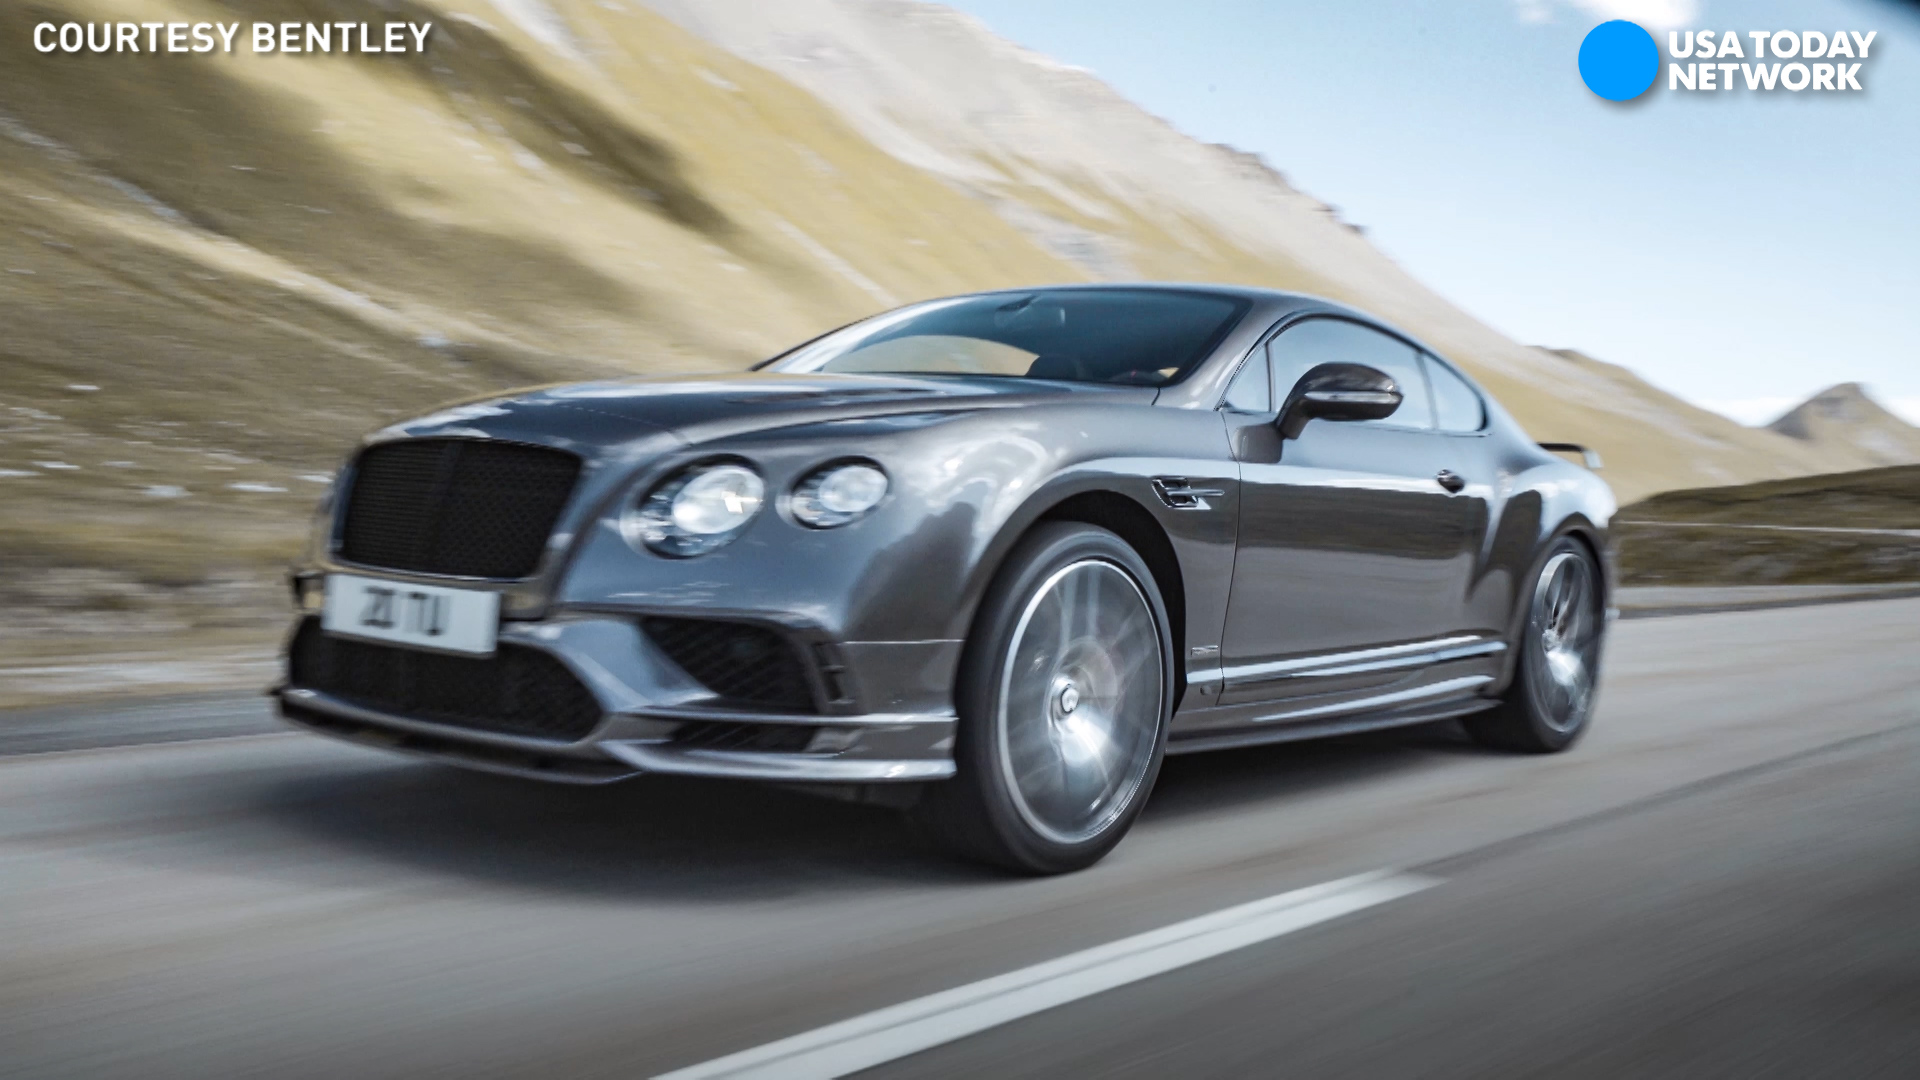 Bentley reveals its 209-mph, 'most powerful' car ever